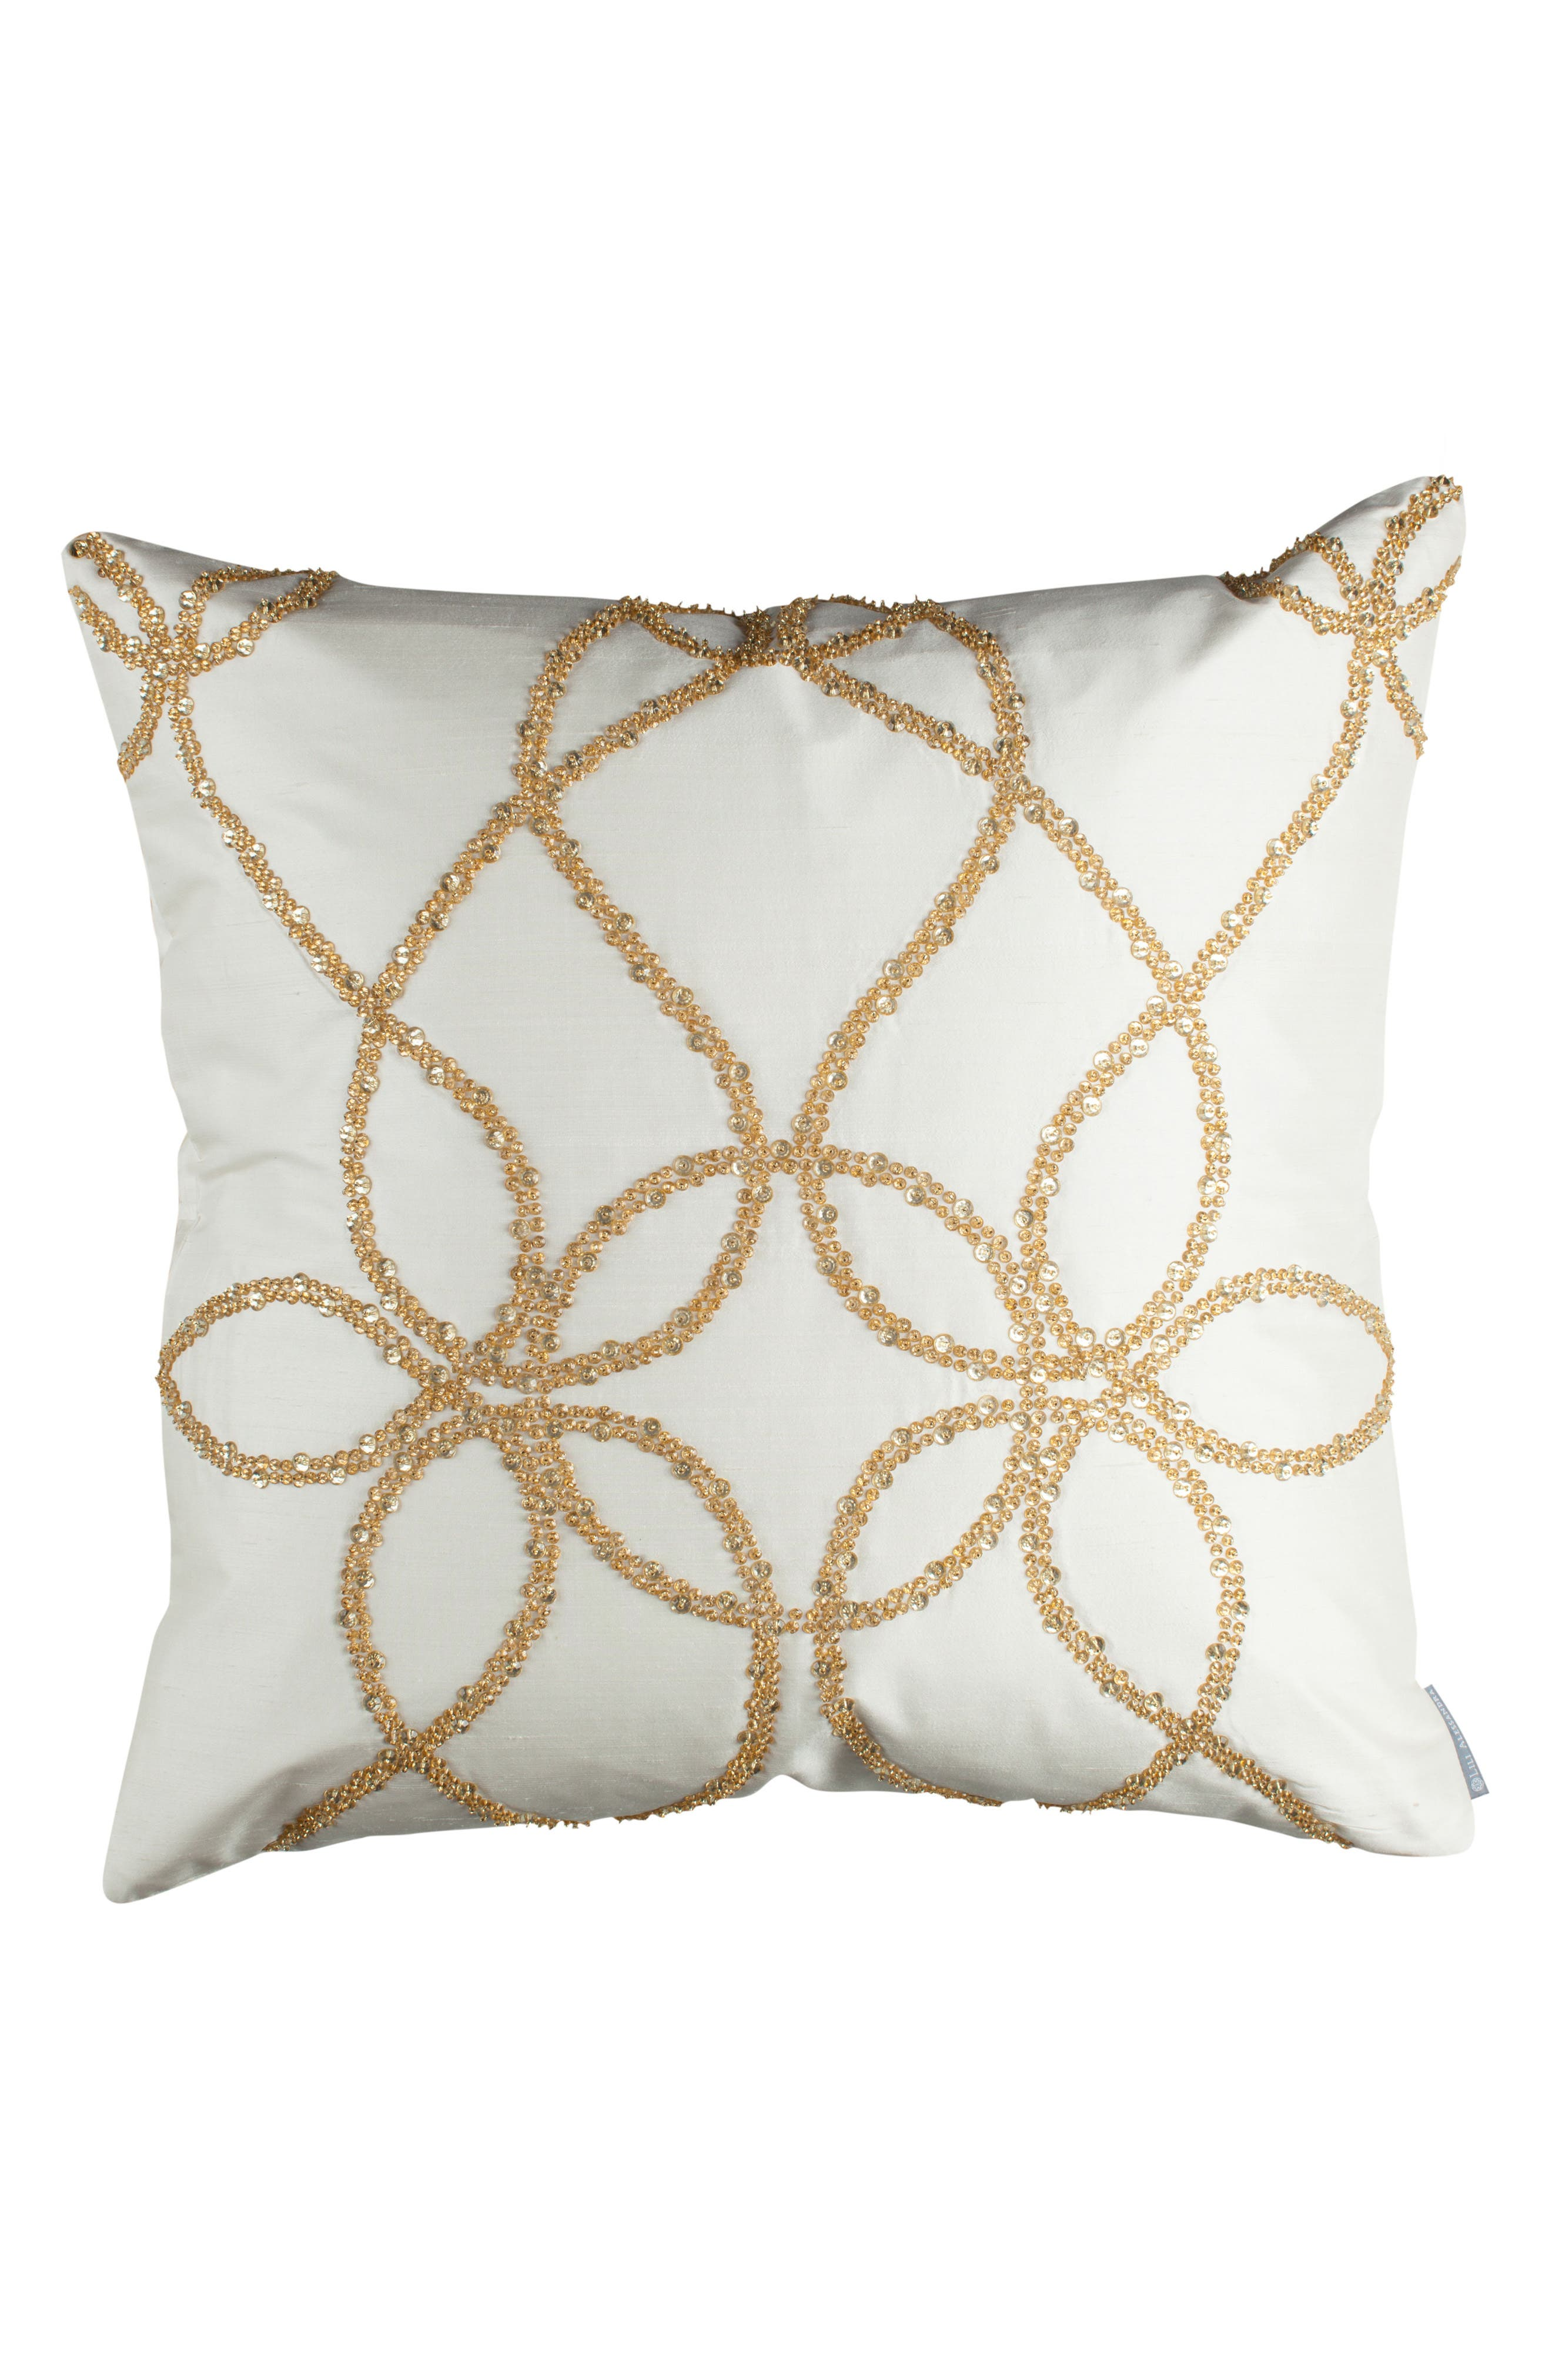 Alternate Image 1 Selected - Lili Alessandra Silk Accent Pillow